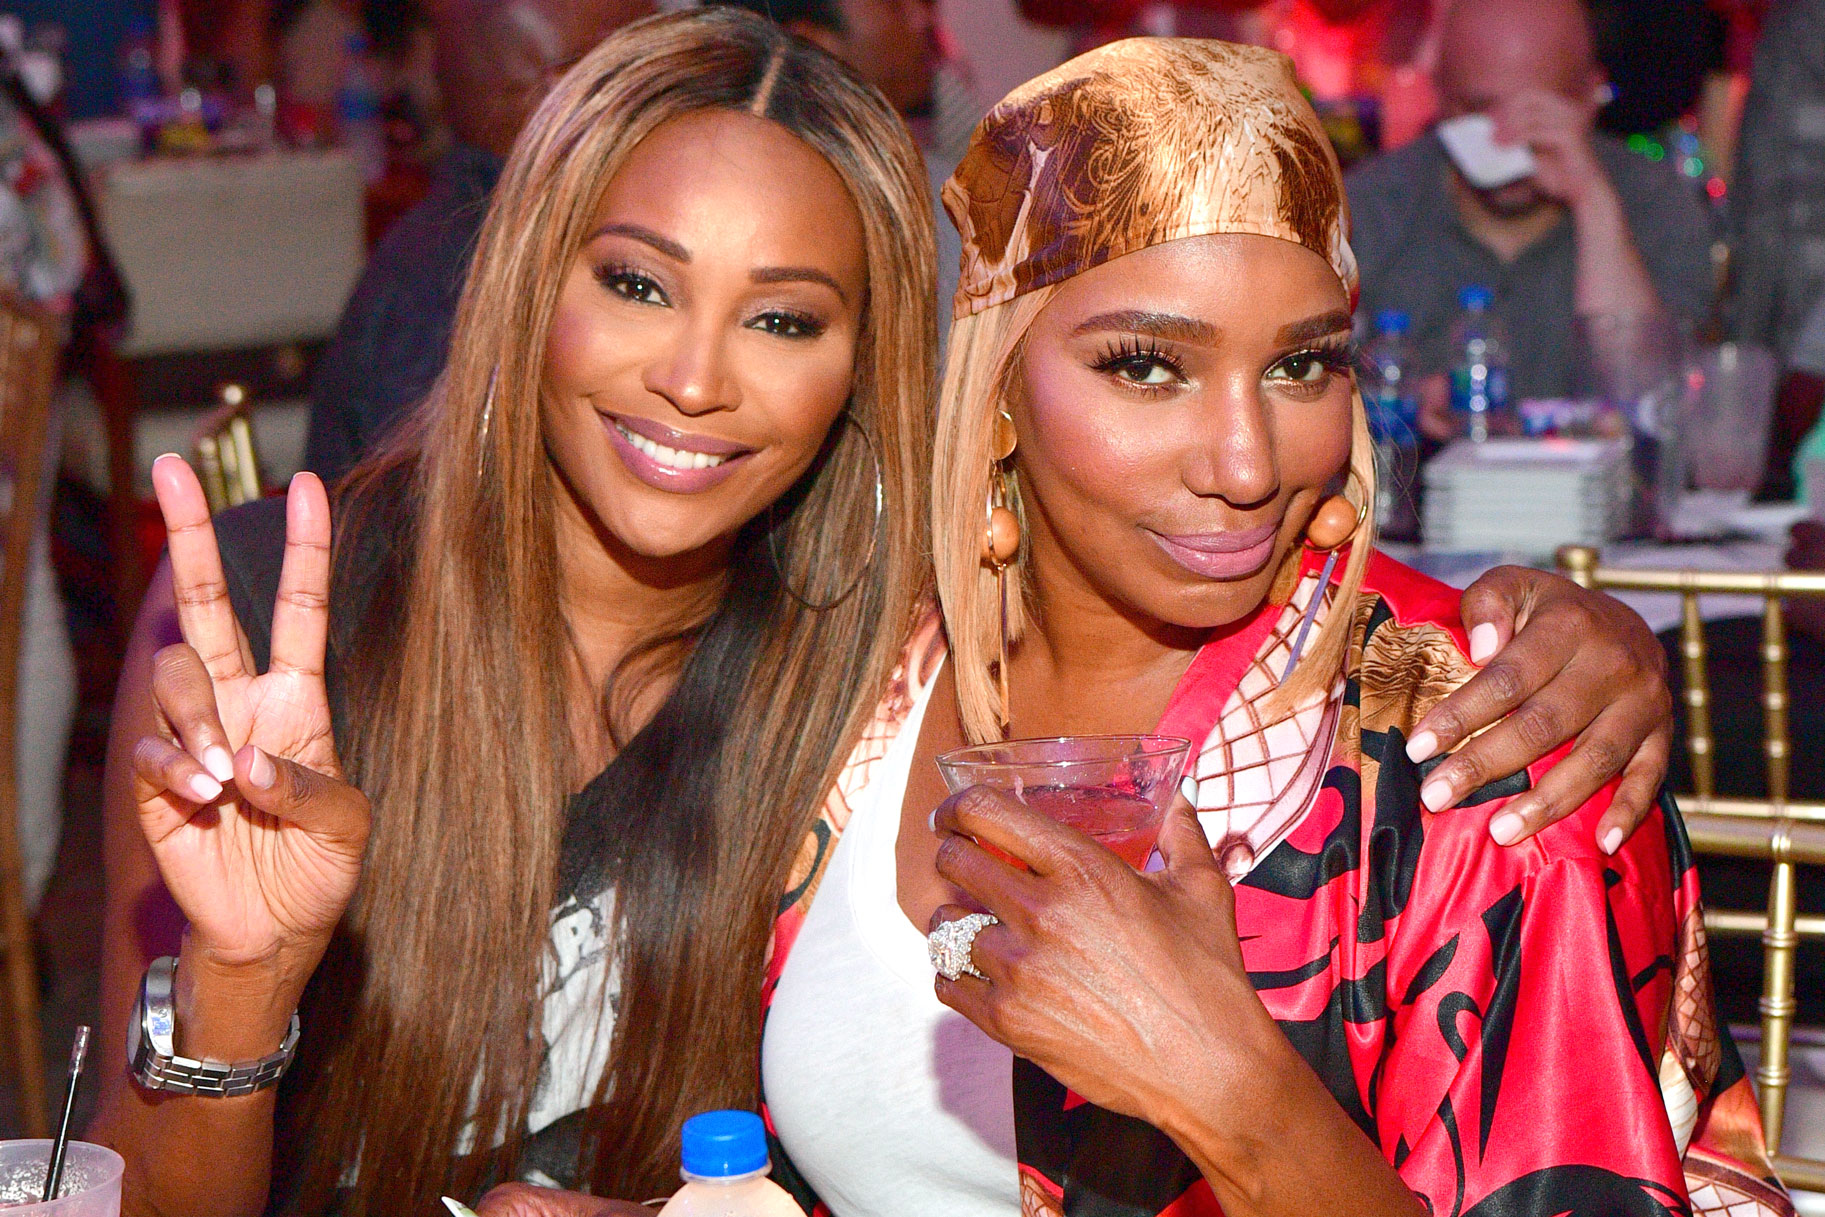 cynthia-bailey-and-nene-leakes-almost-run-into-each-other-at-kentucky-derby-party-amid-their-feud-heres-what-happened